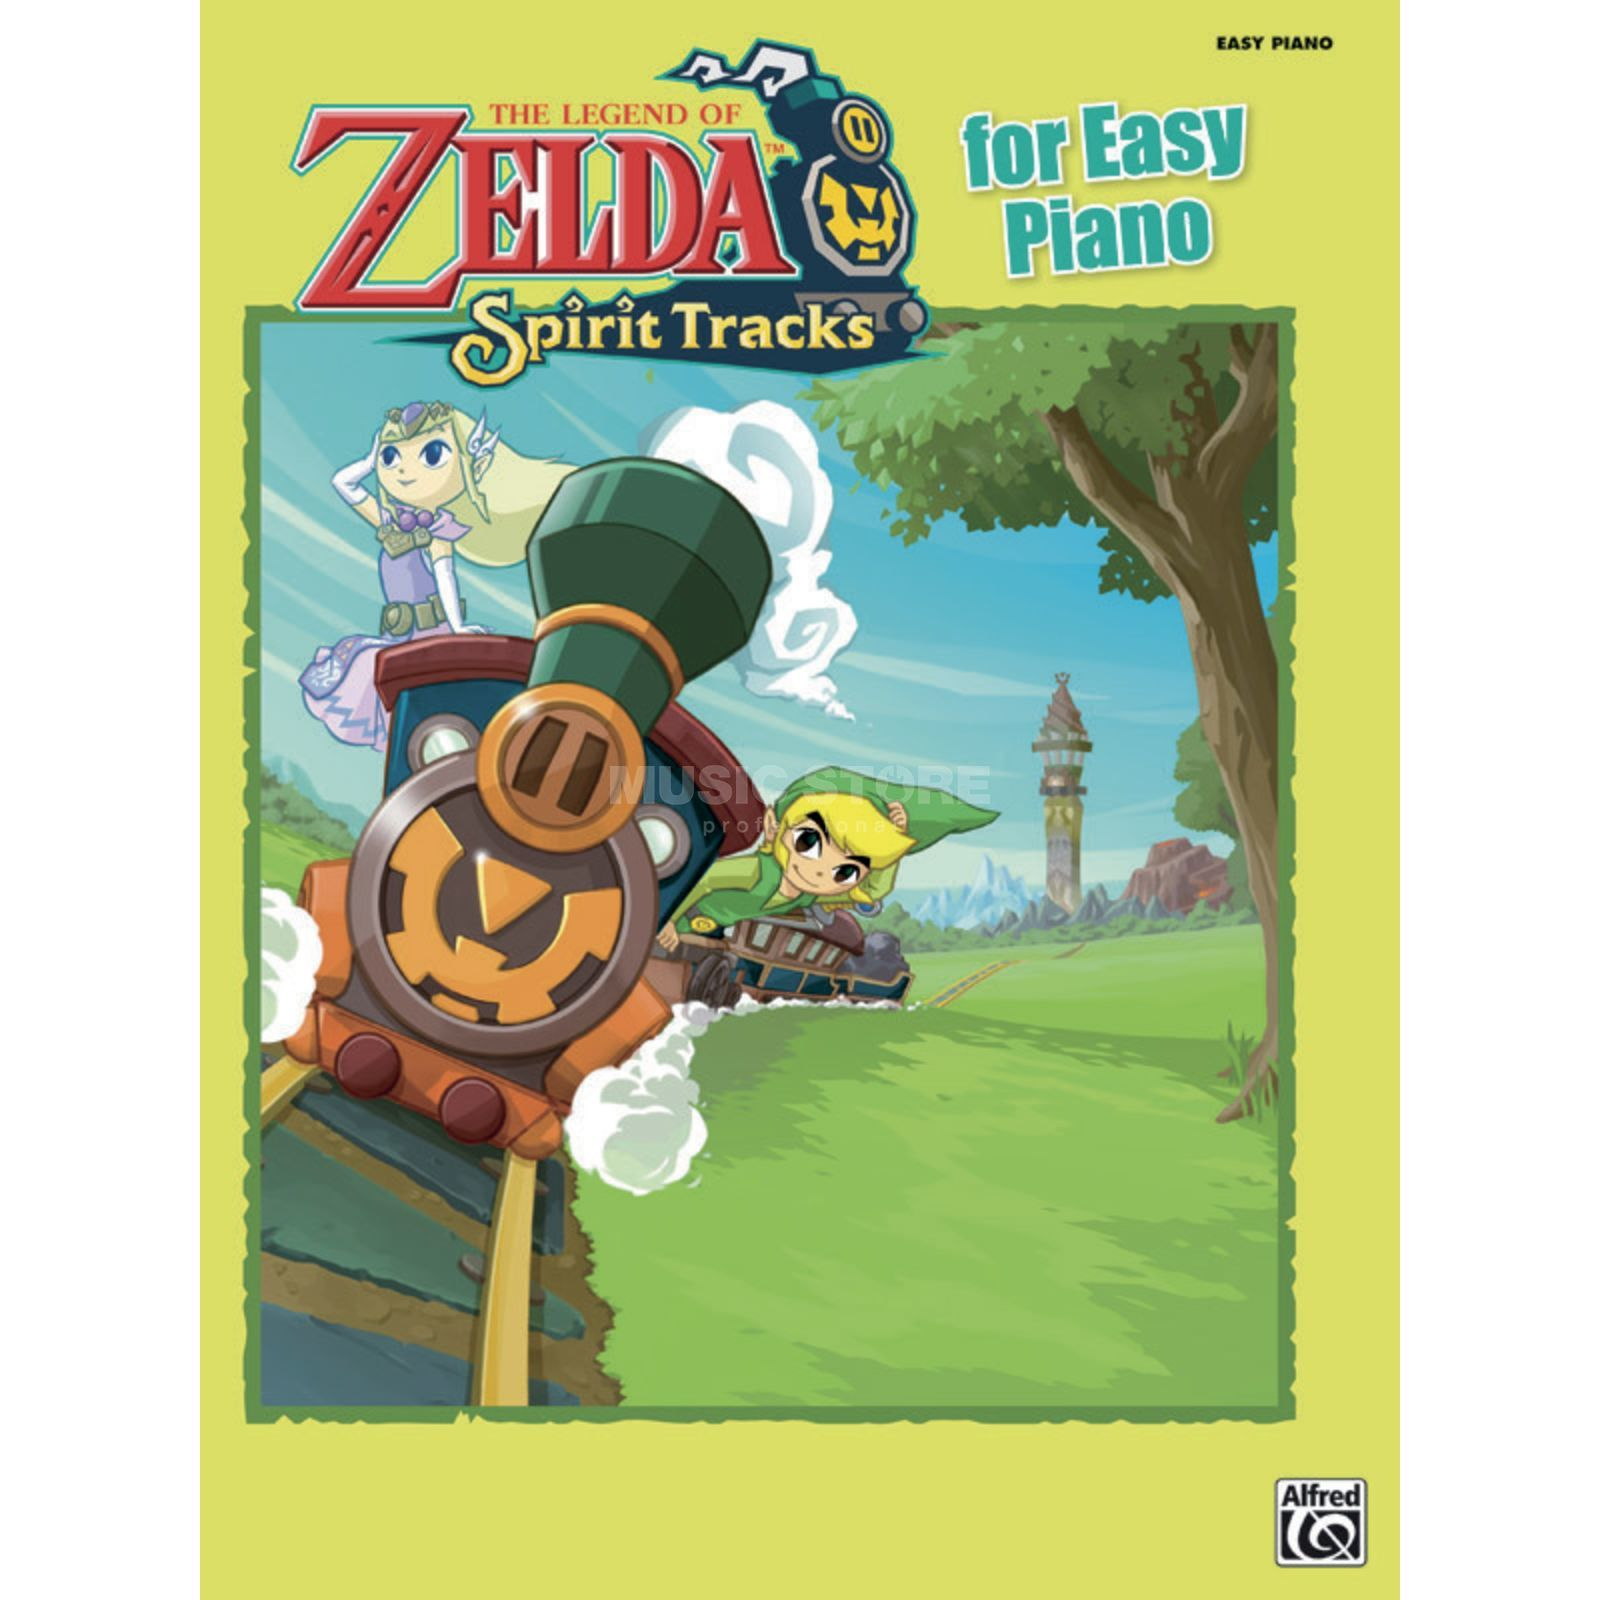 Alfred Music The Legend of Zelda: Spirit Tracks for Easy Piano Produktbild